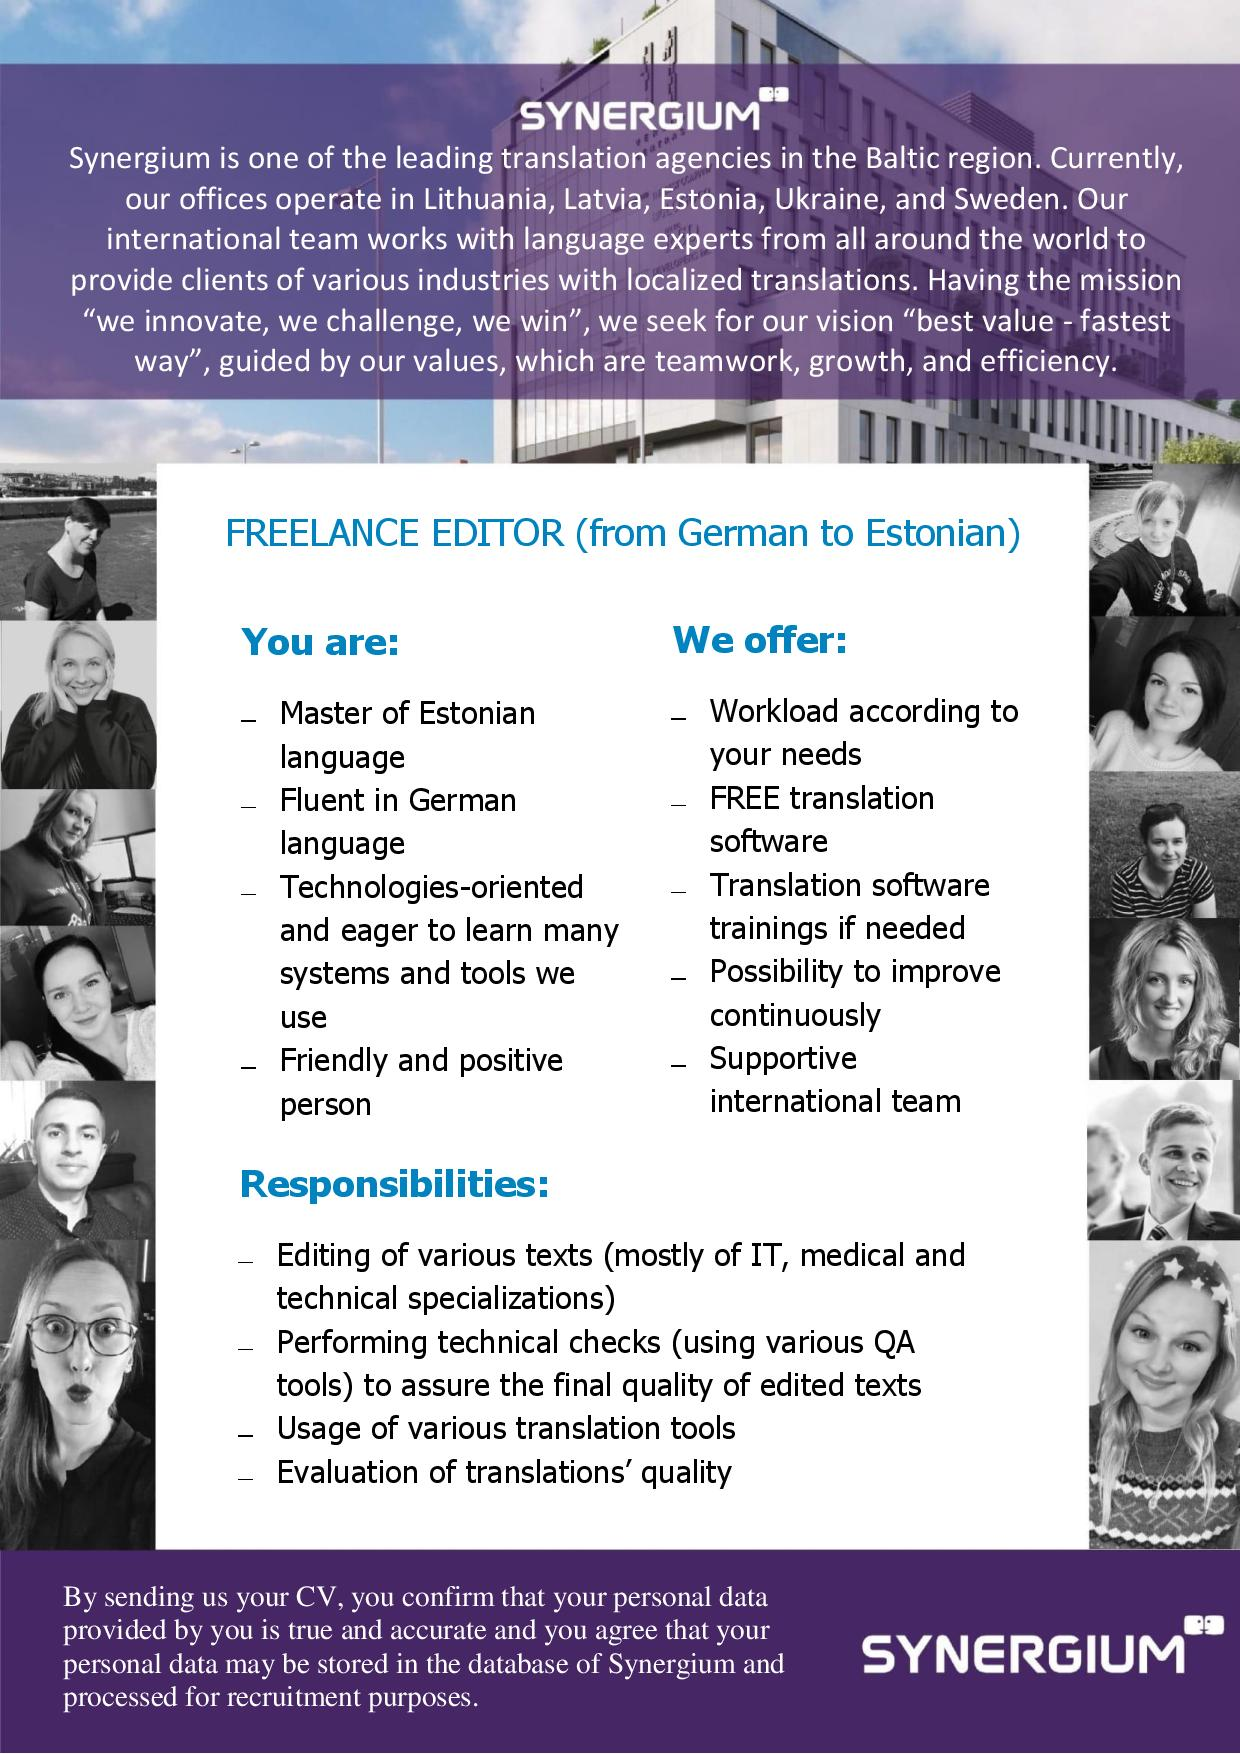 freelance editor from german to estonian job advertisement synergium